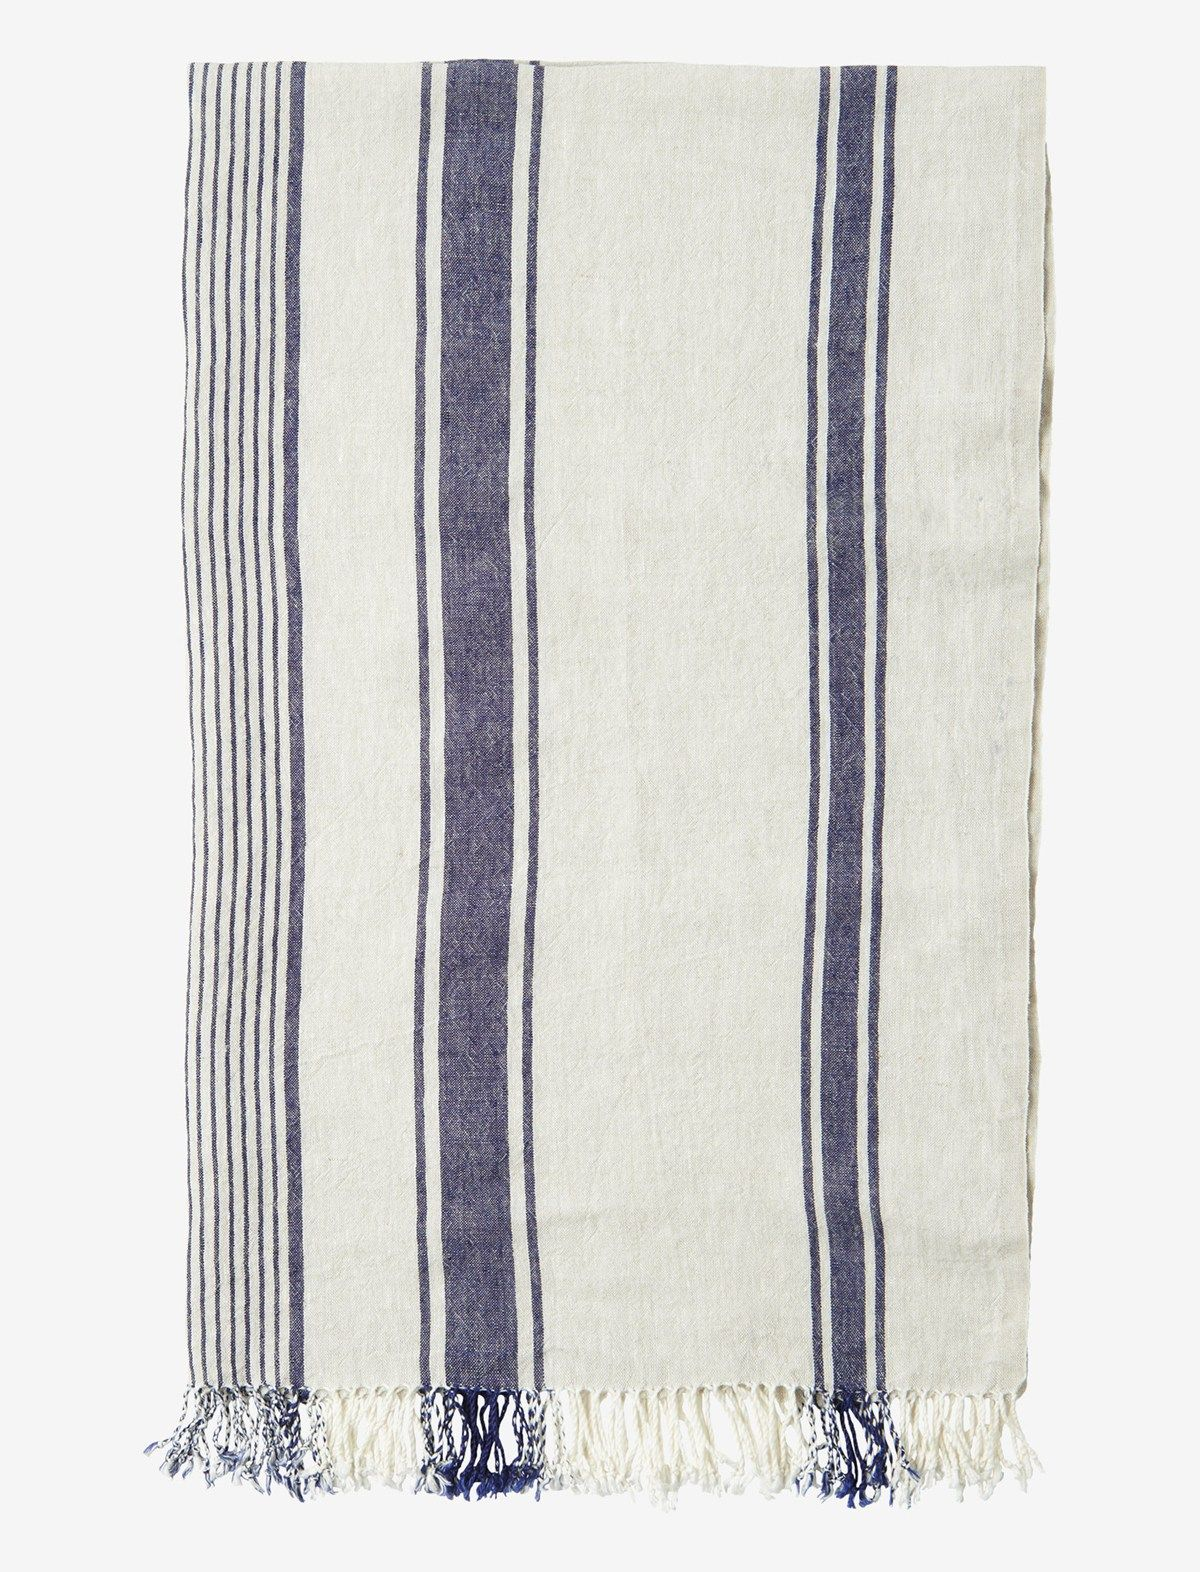 Hardwearing, washed linen beach towel with a woven navy stripe. The linen is washed for suppleness and a textured, slightly worn in feel. Selvedge edges. Tassles at end. Made by a traditional, family run company in Lithuania. Linen, being hollow fibred, is much more absorbent and drying than cotton.